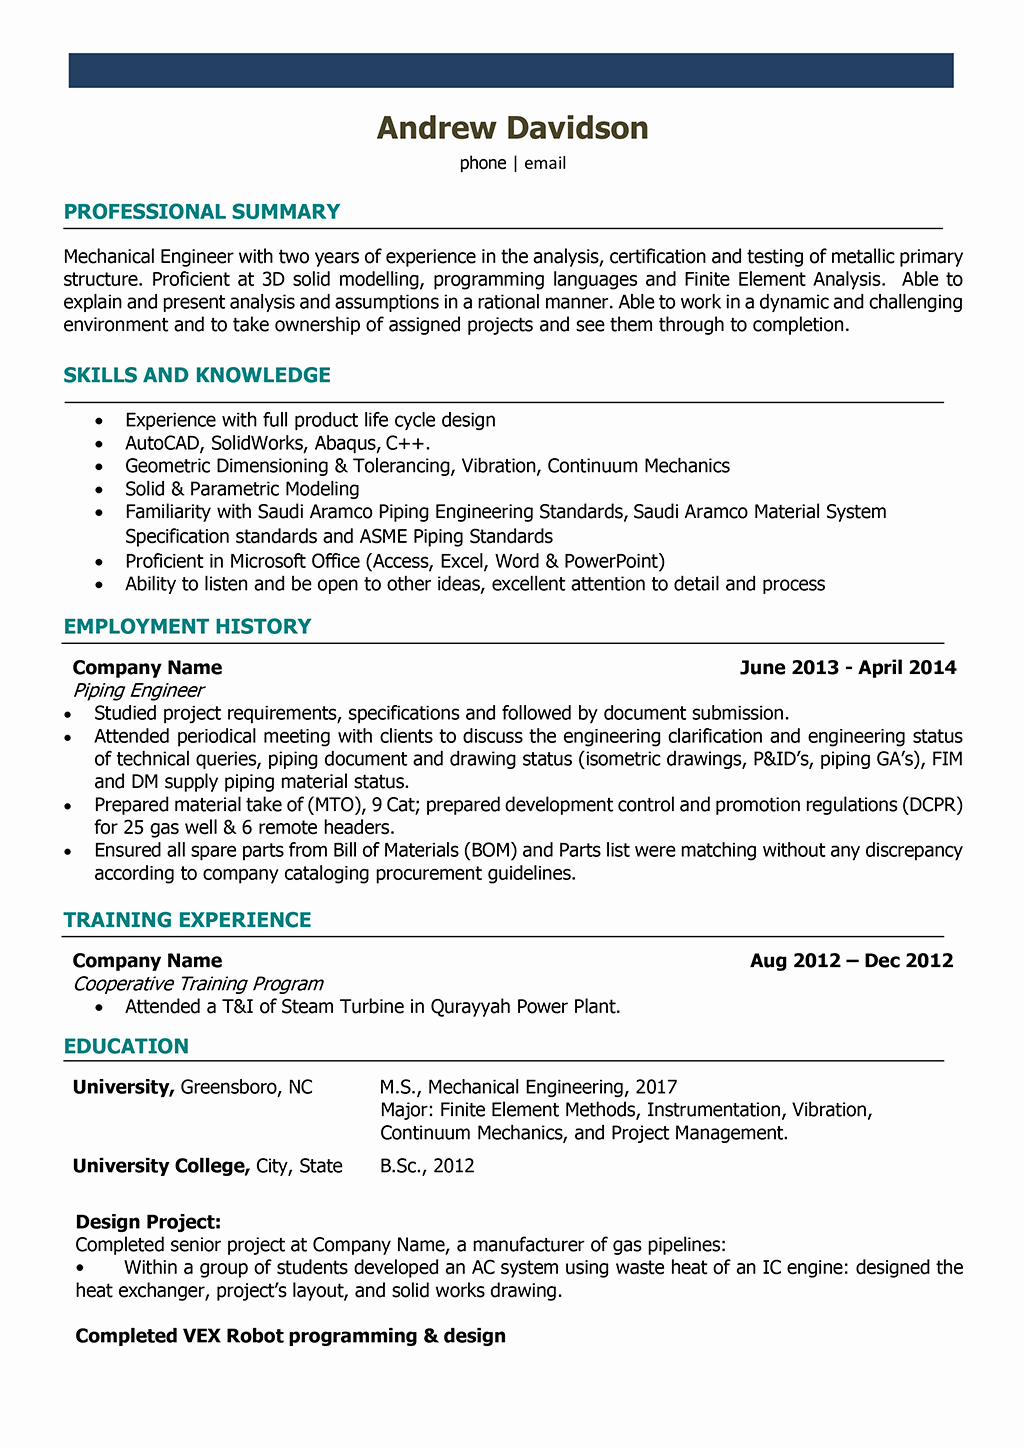 Mechanical Engineering Resume Templates Beautiful Mechanical Engineer Resume Samples and Writing Guide